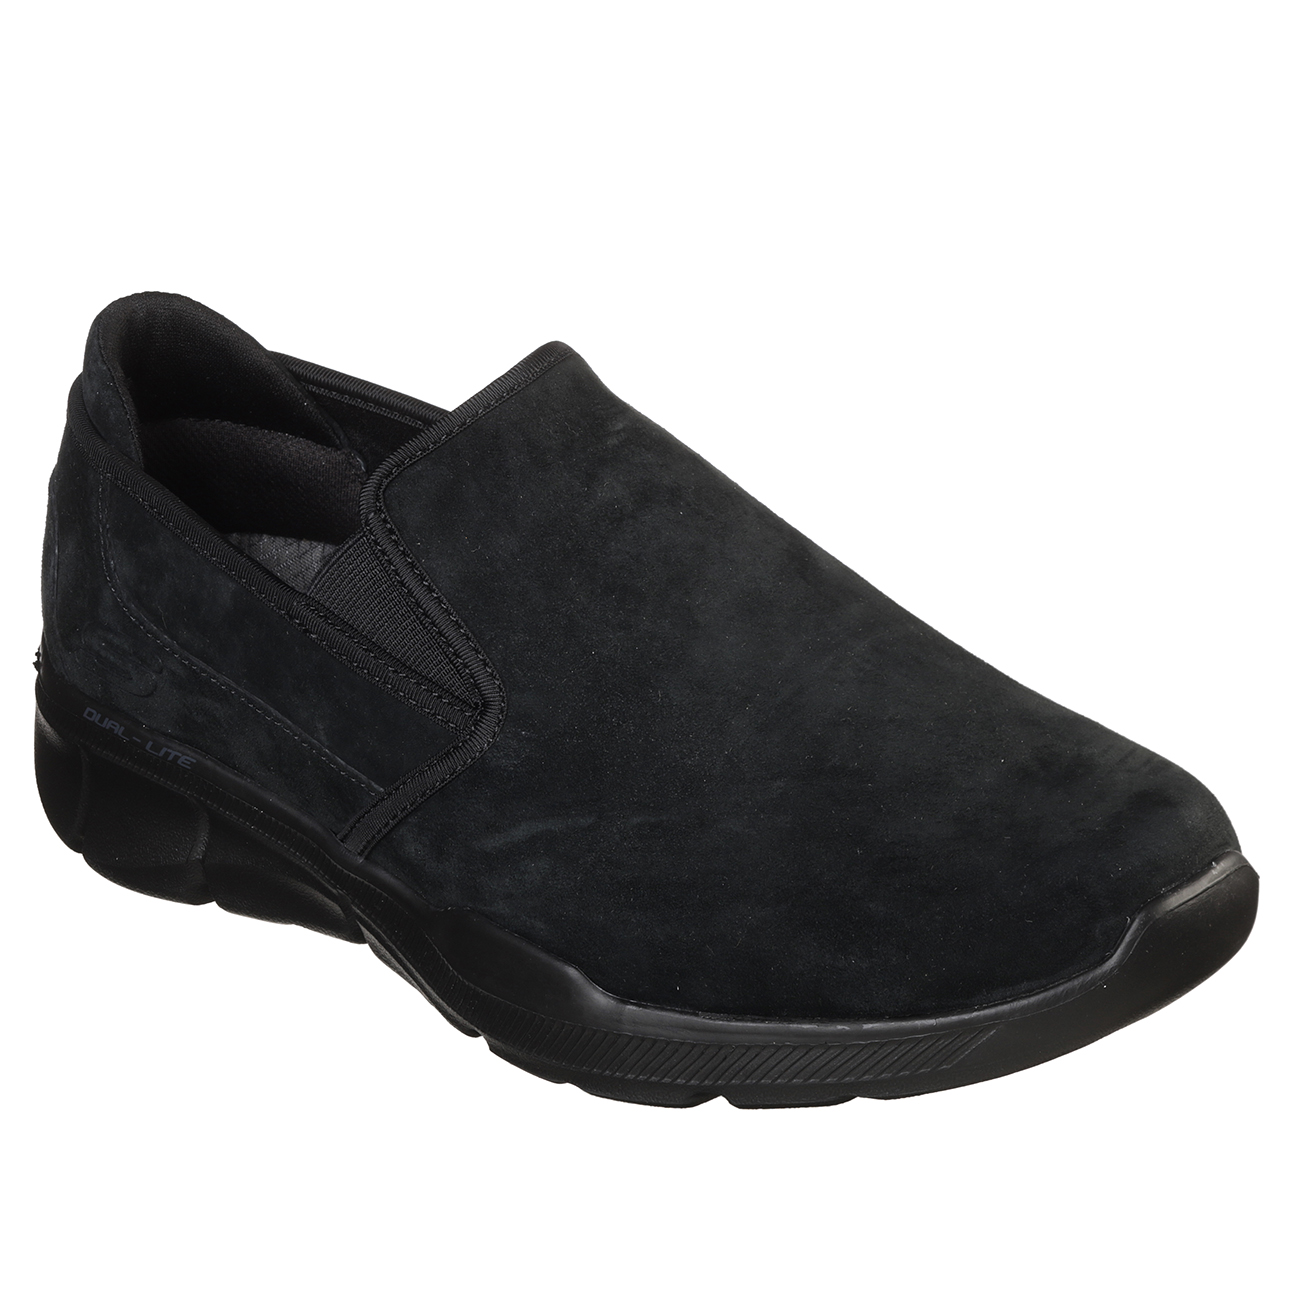 Skechers Equalizer 3.0 Substic Relaxed Fit